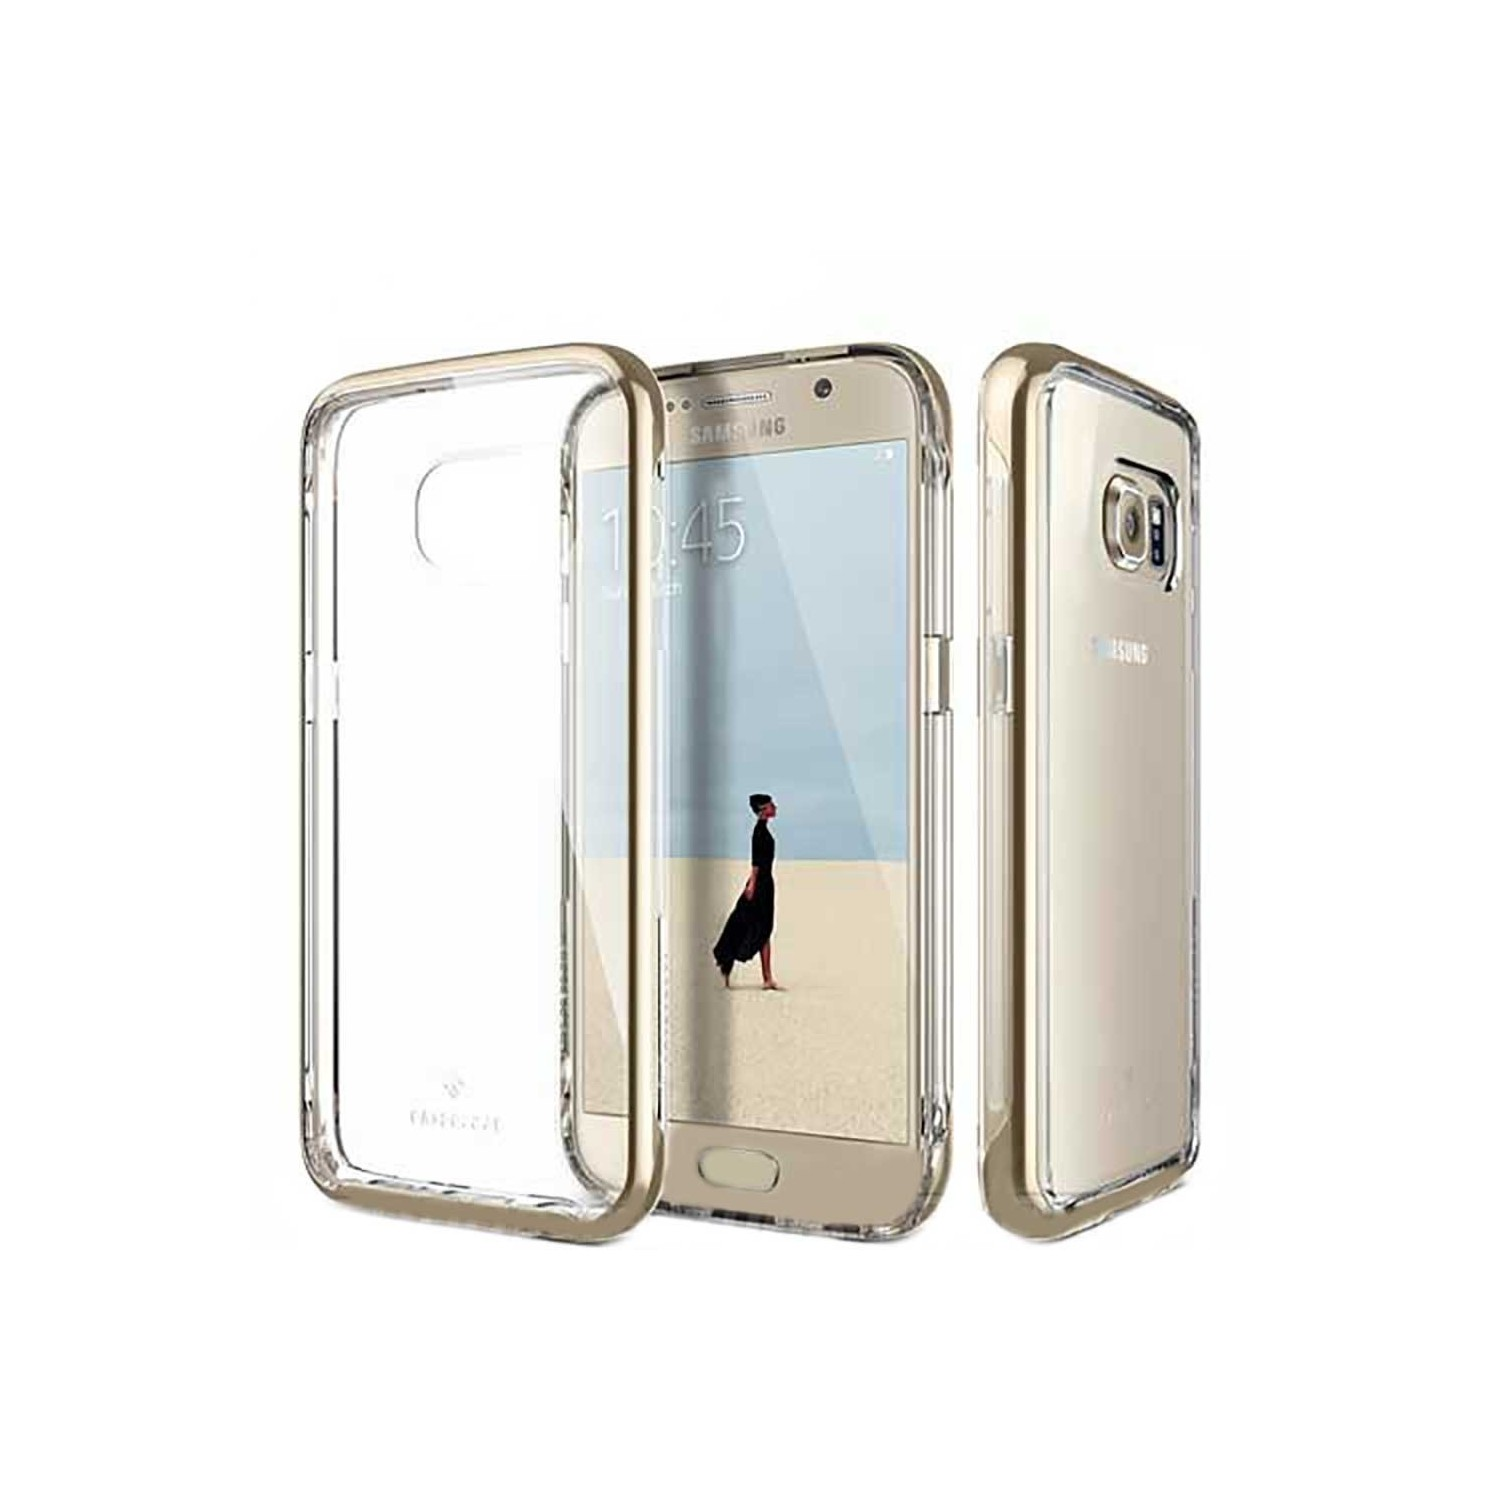 Case - CASEOLOGY Samsung S7 - Skyfall - Clear Gold